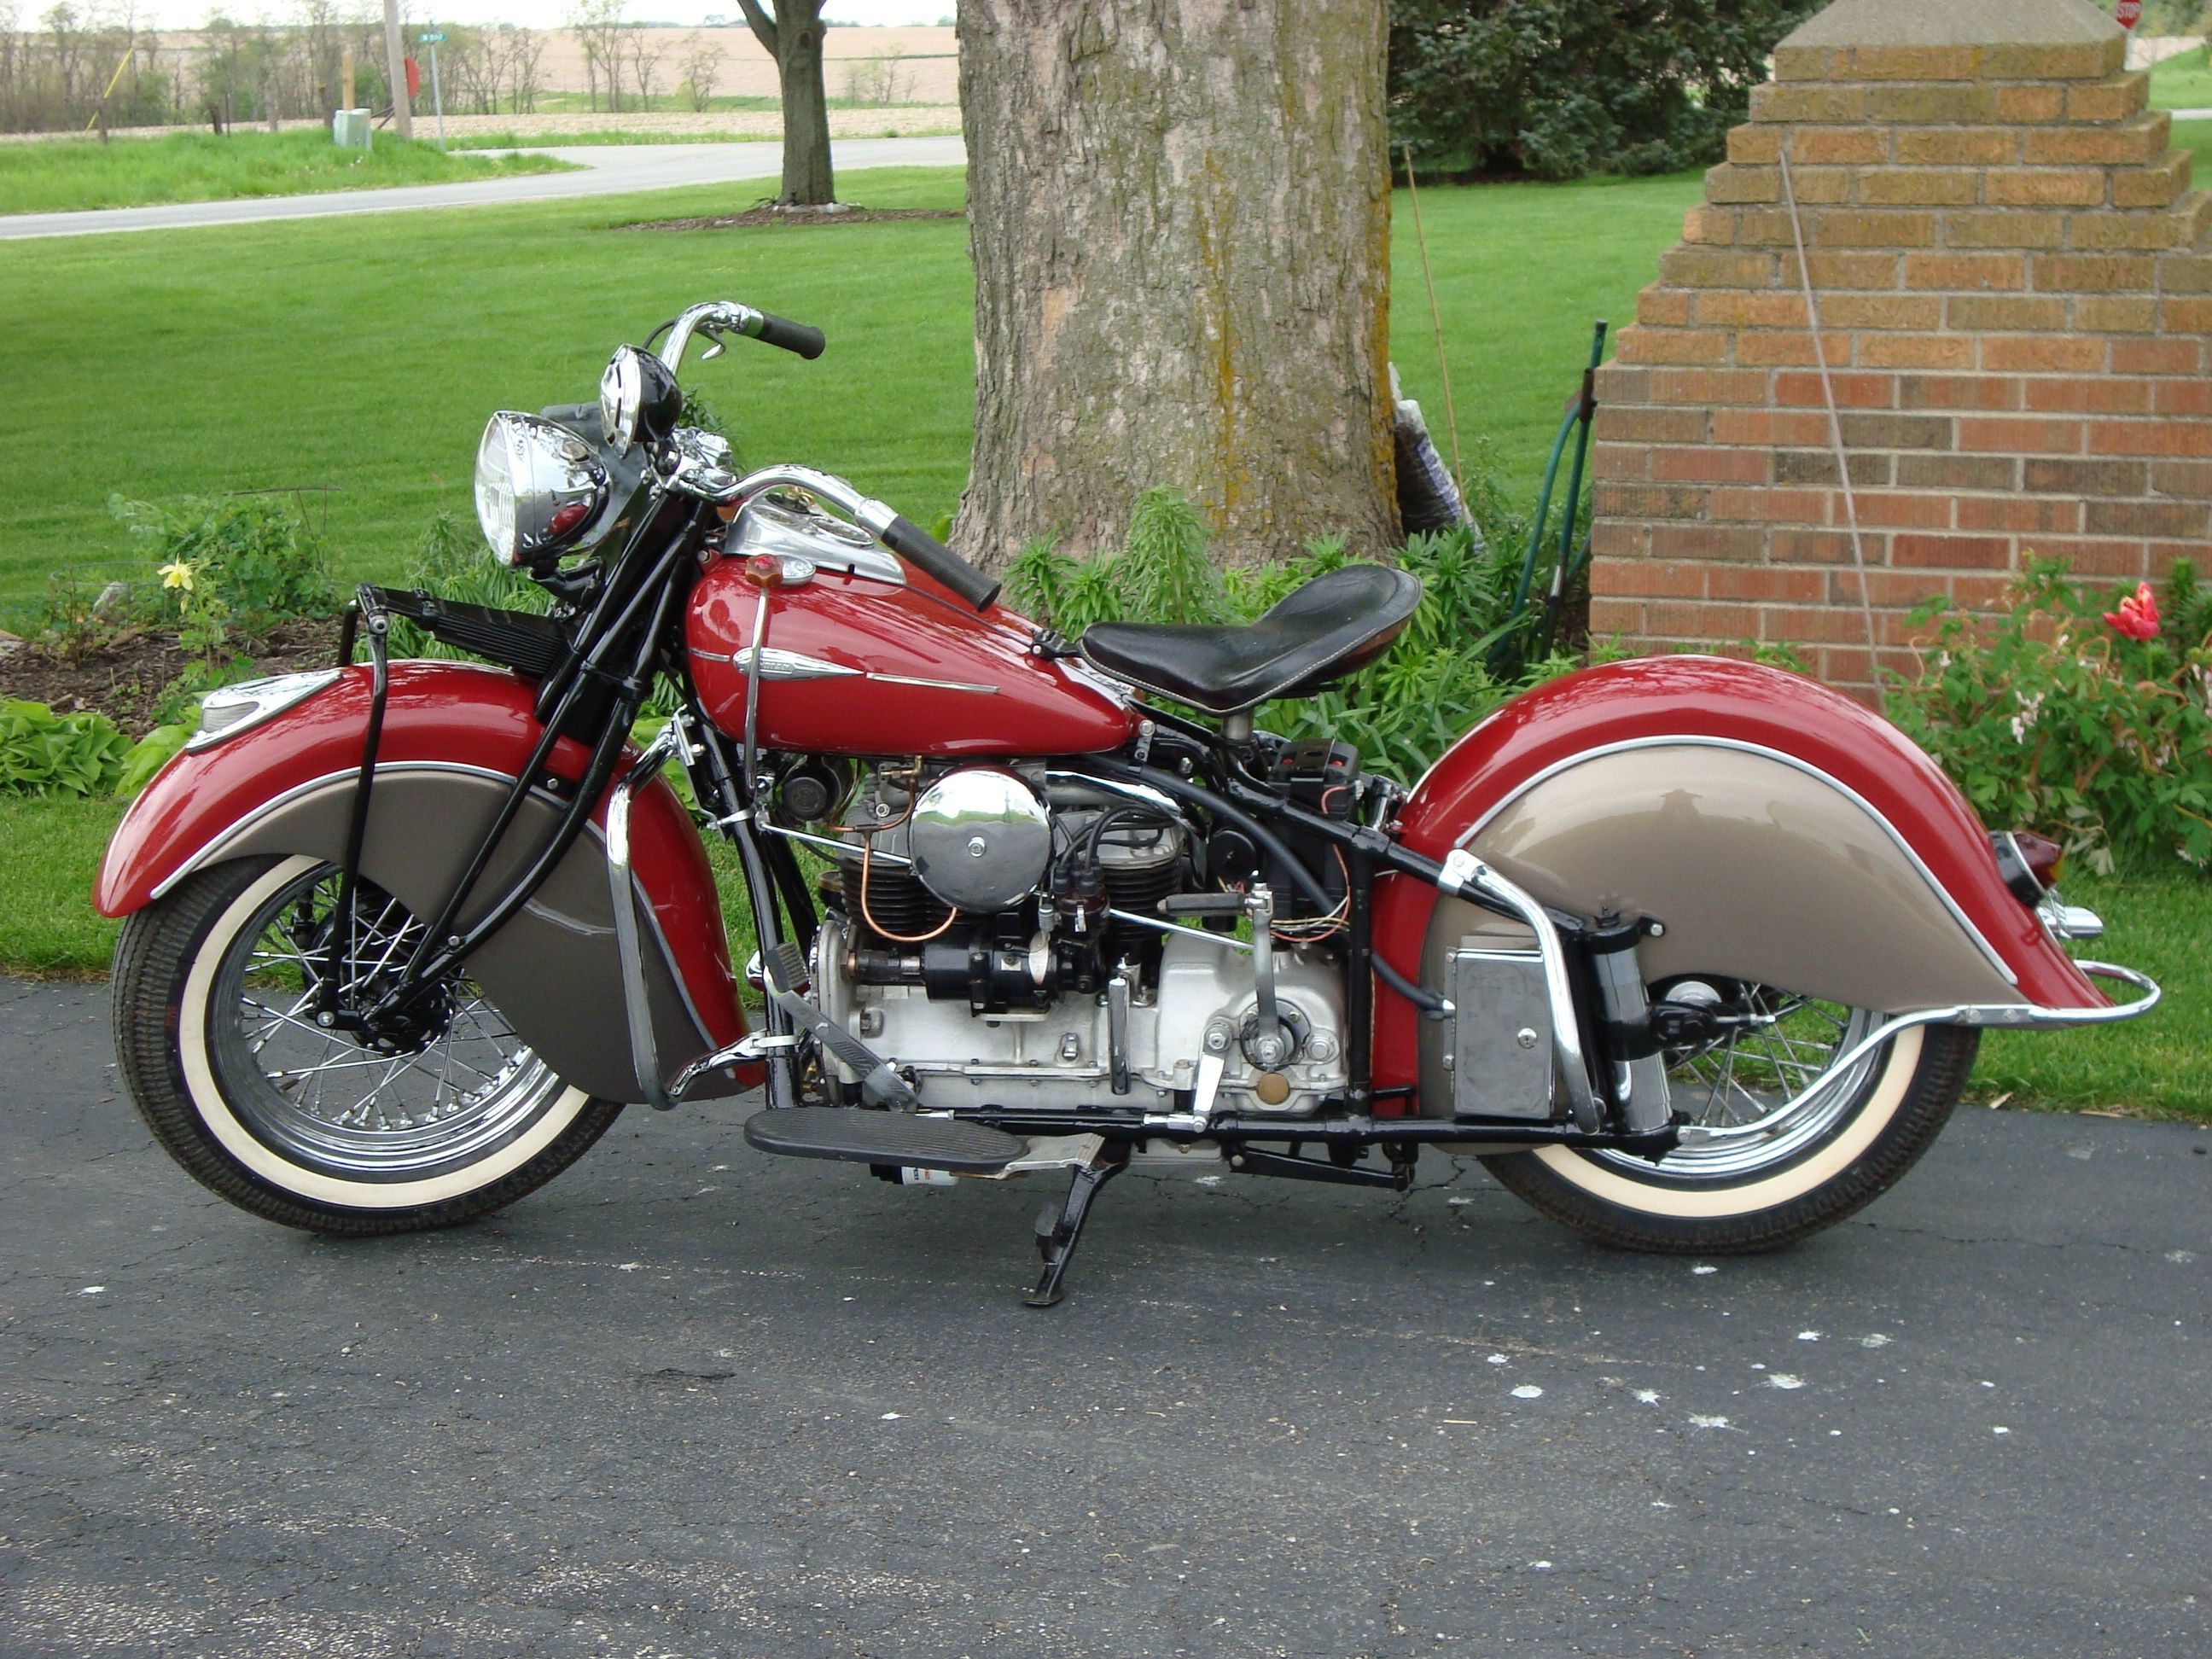 1941 Indian. My brother n law was rebuilding one in our